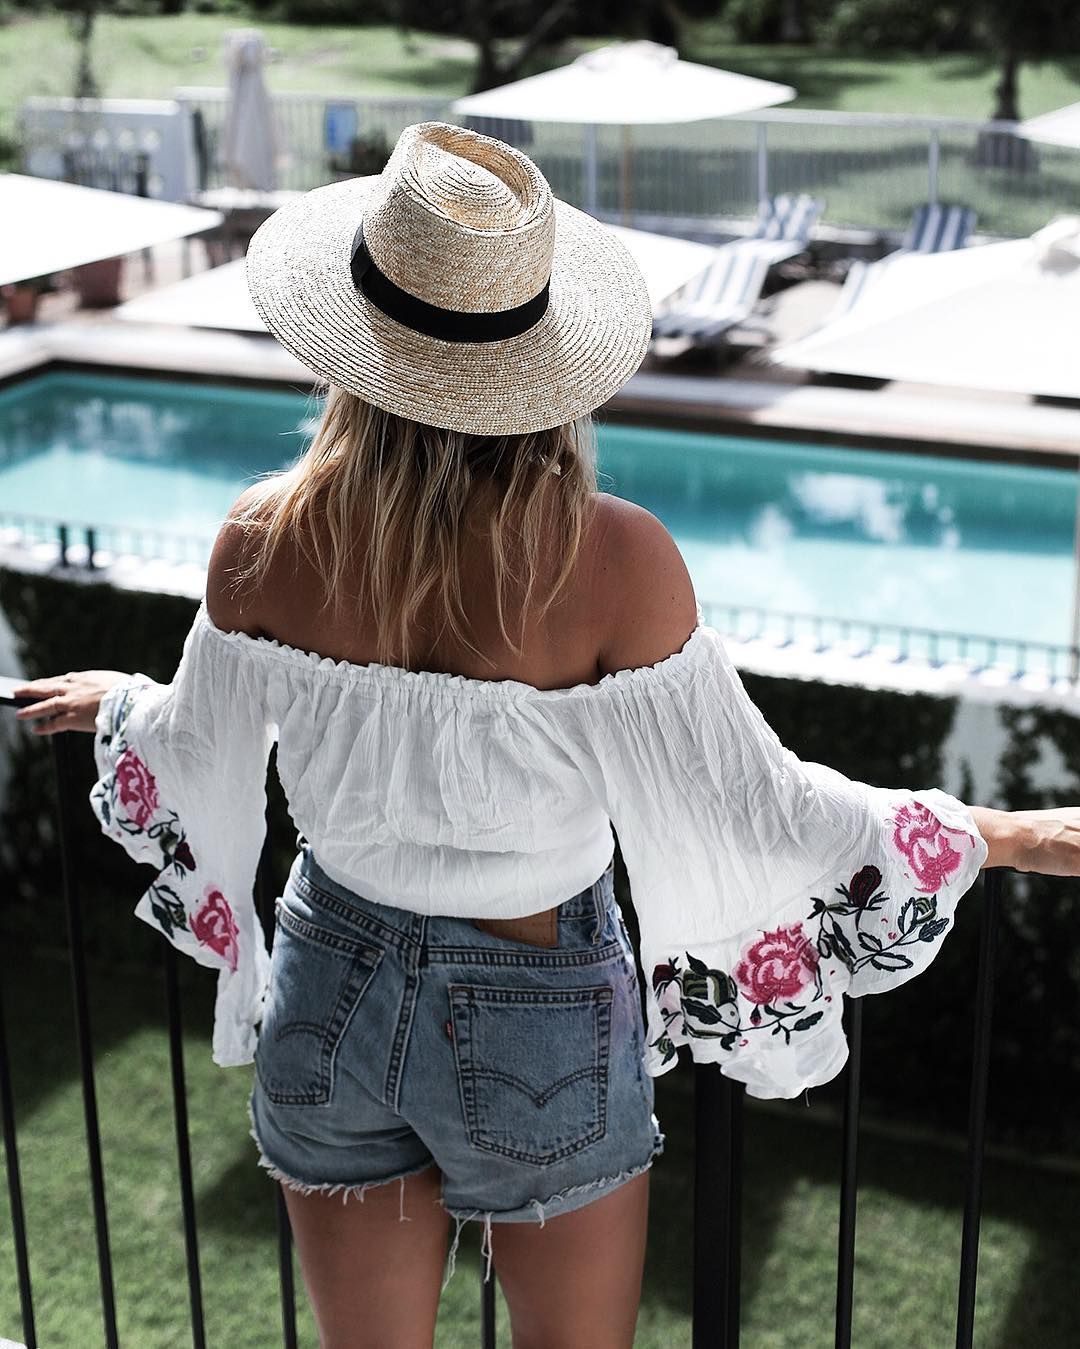 Cute Outfit Ideas for Summer